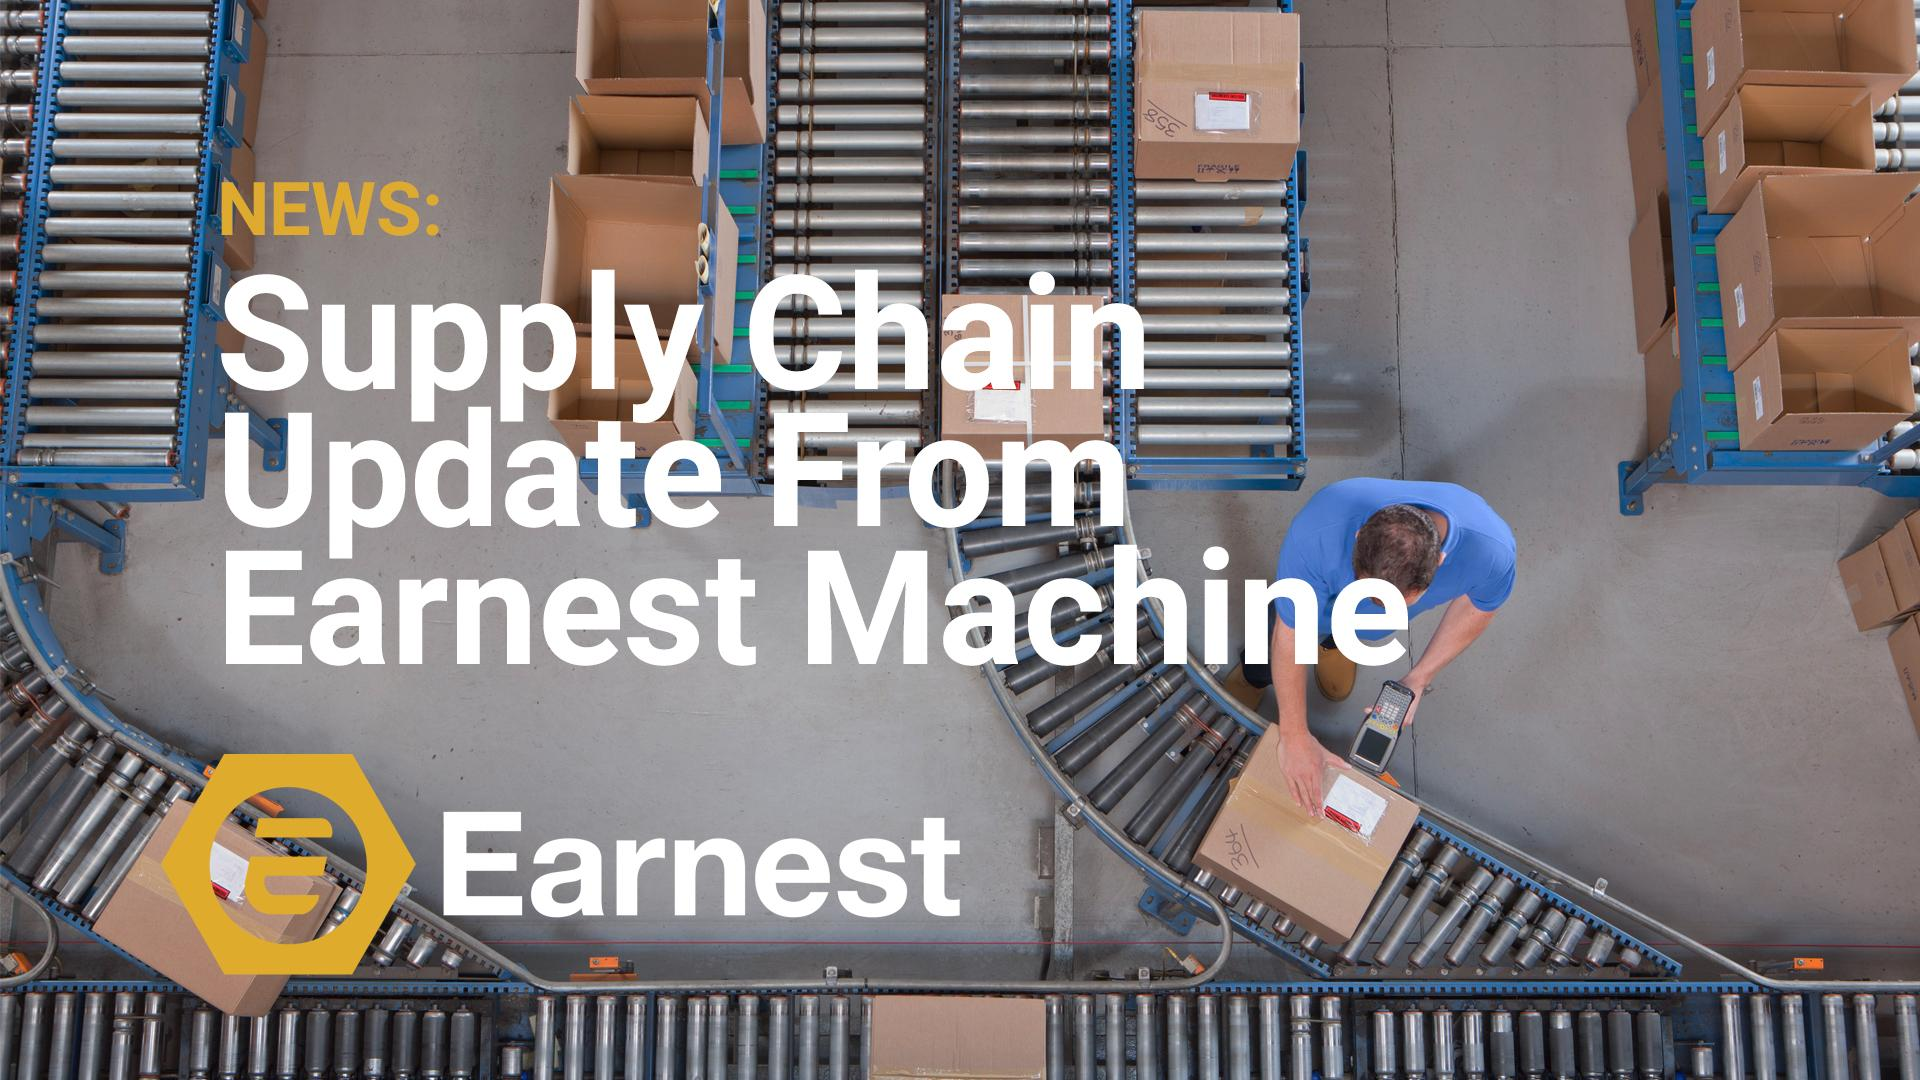 Supply Chain Update From Earnest Machine